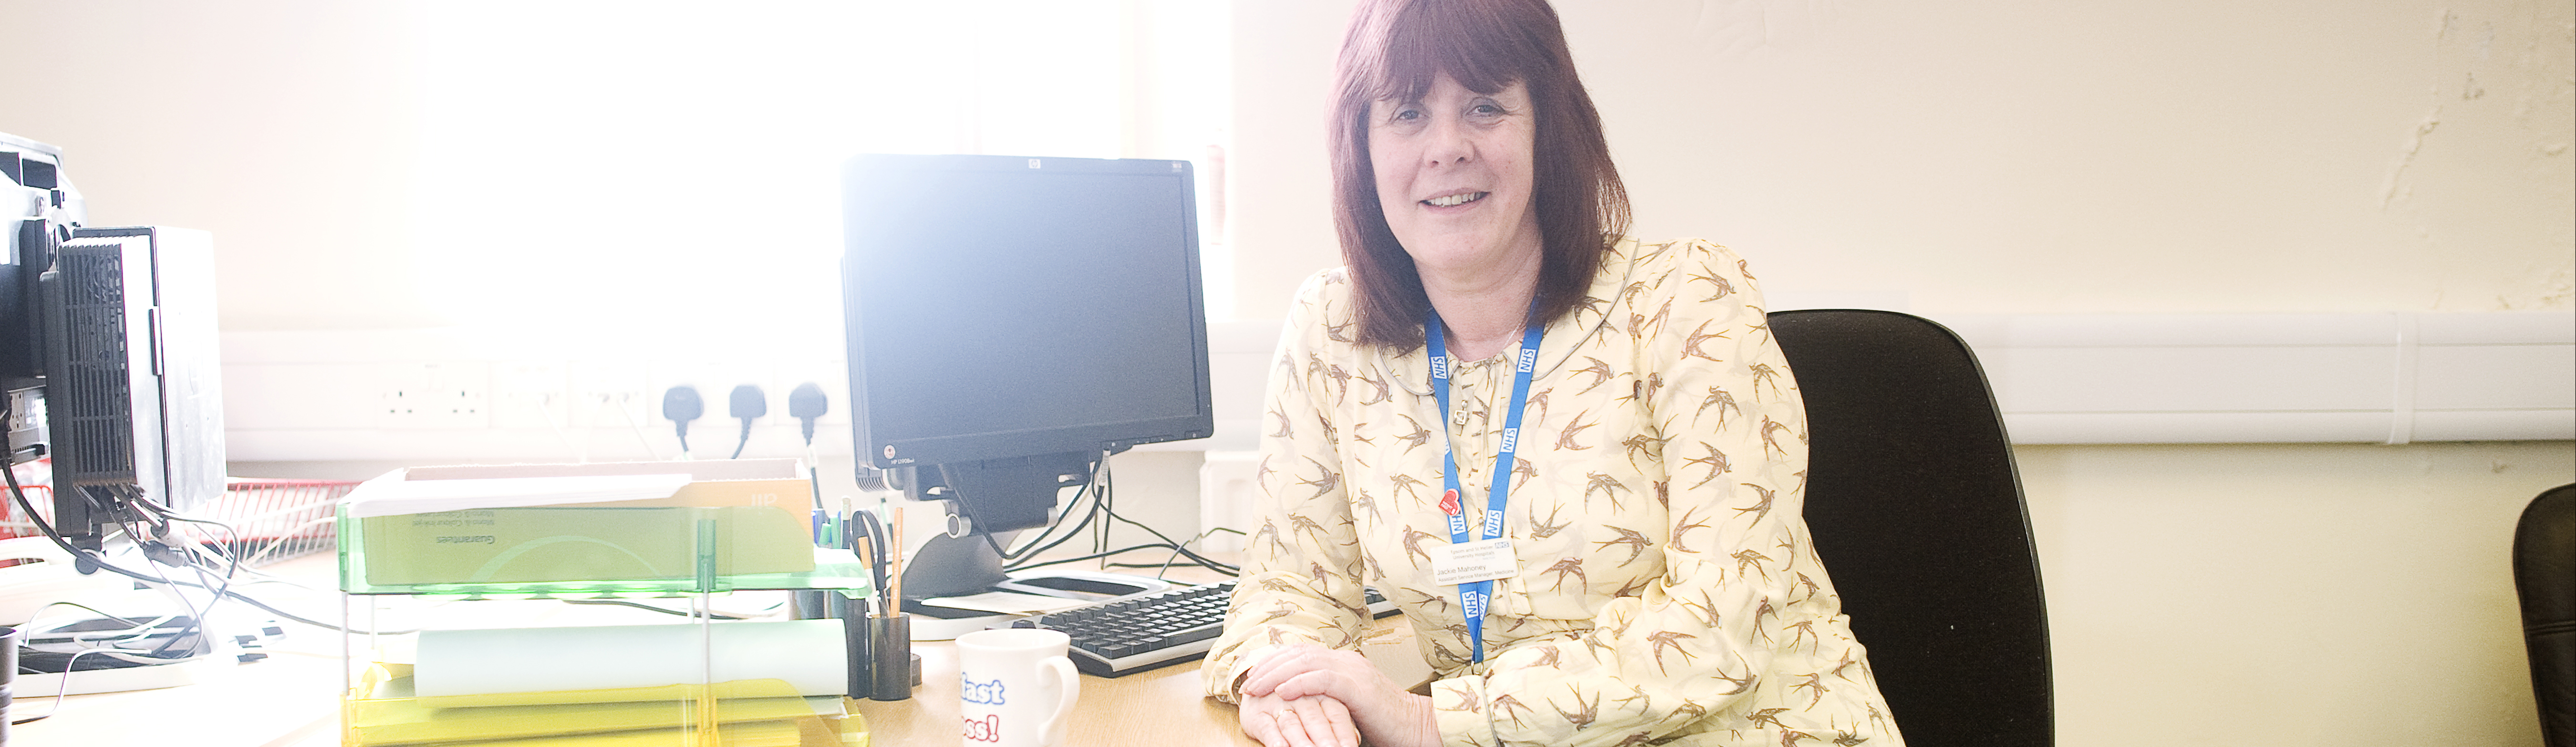 Jacqueline Mahoney, Assistant Service Manager, at her desk